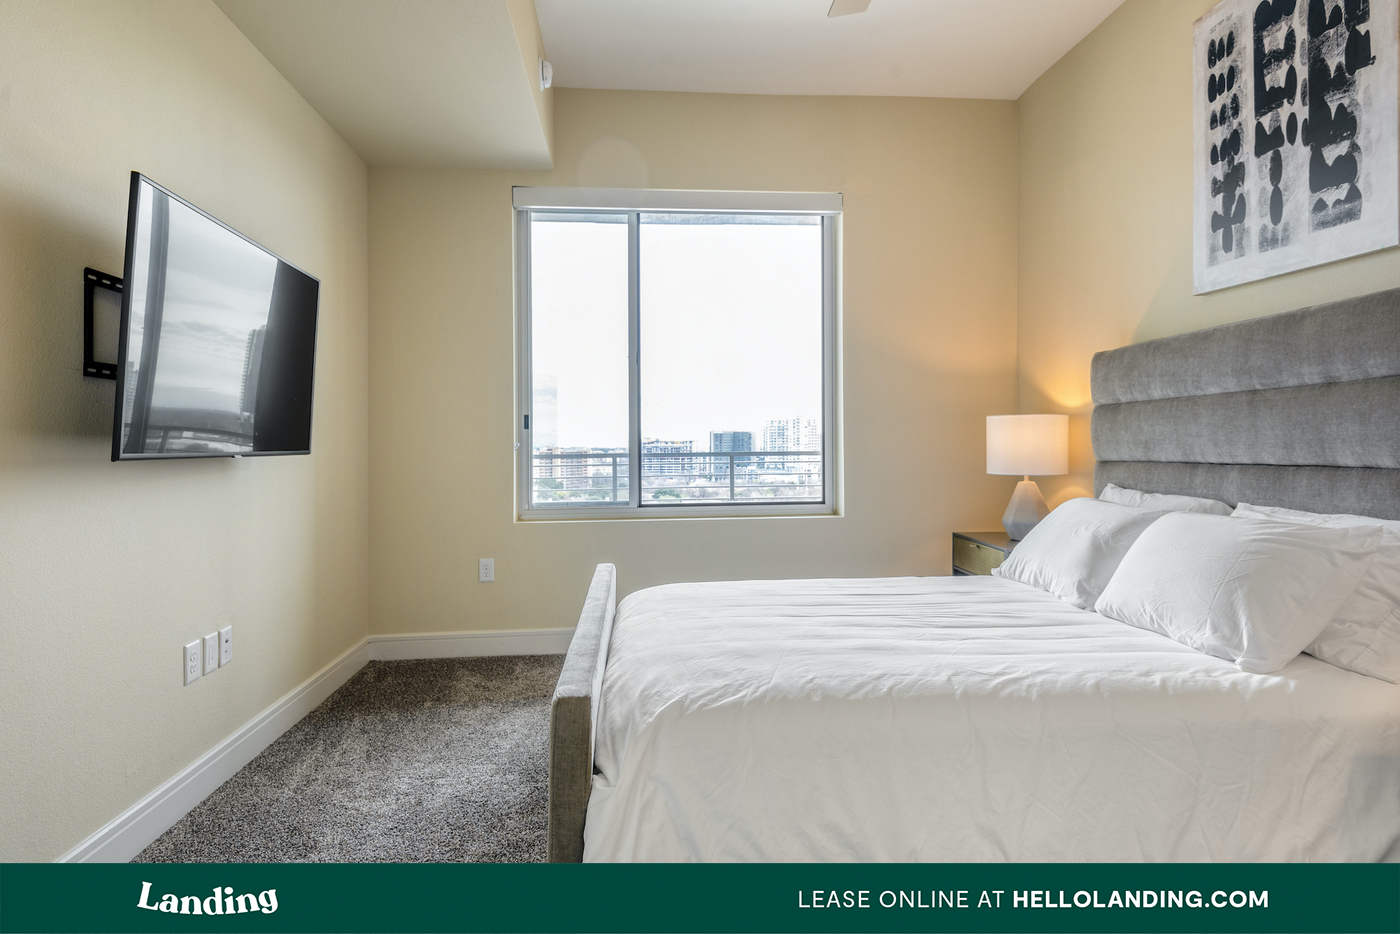 Landing Furnished Apartment Latitude Apartments for rent